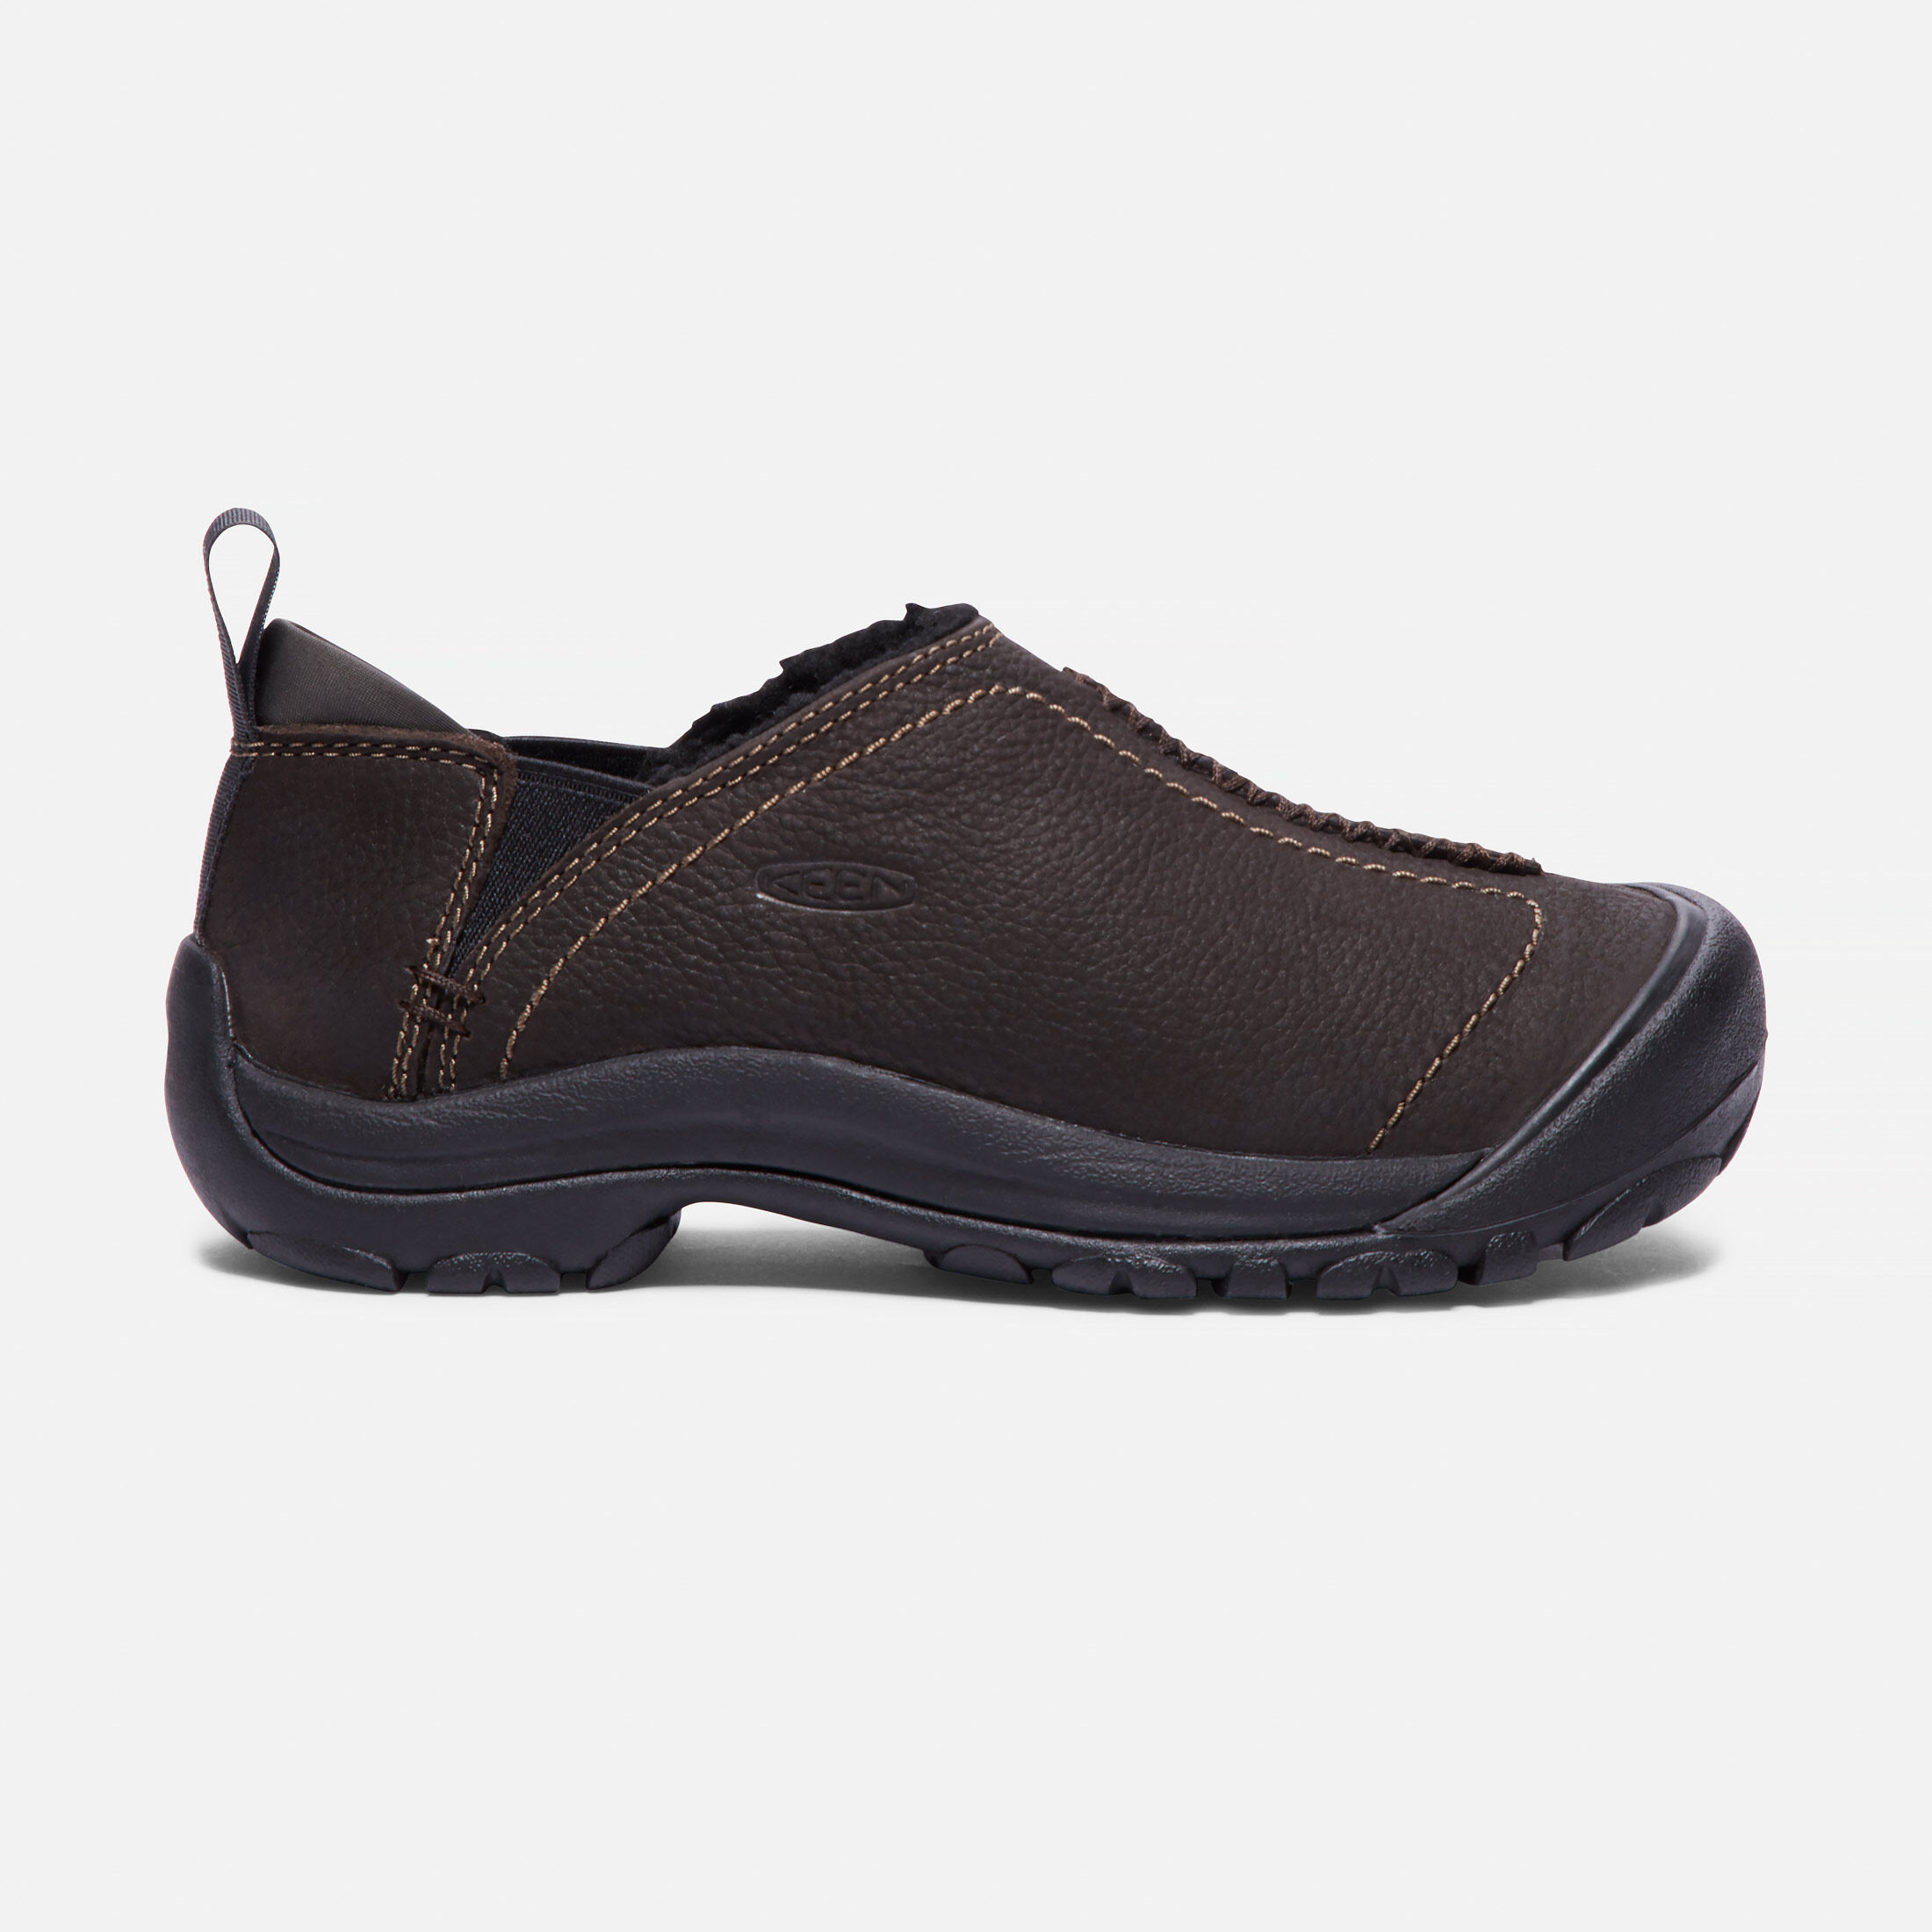 leather slip on shoes women